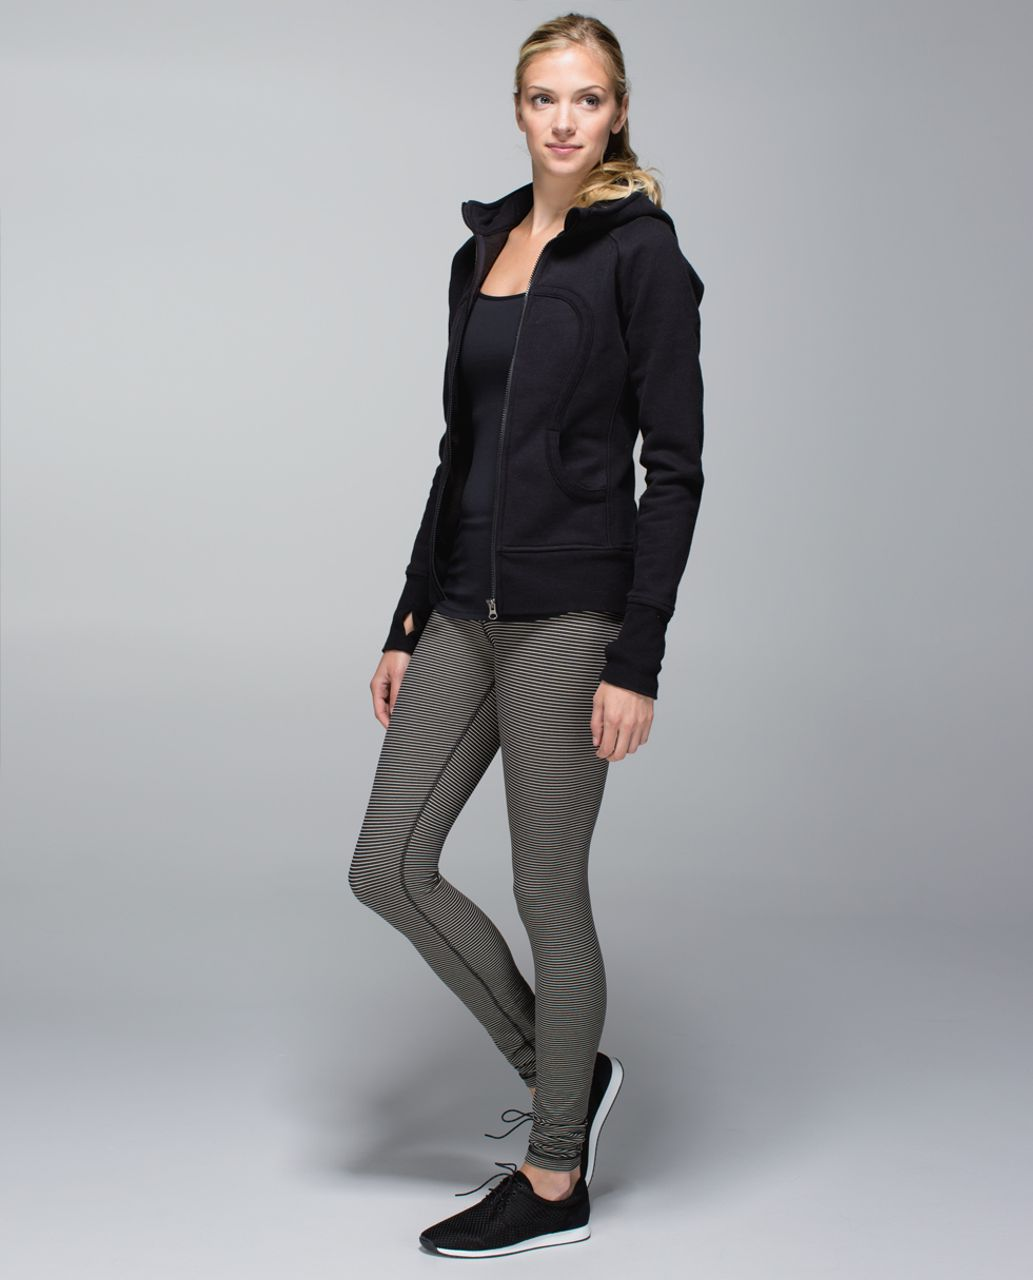 Lululemon Wunder Under Pant *Full-On Luon - Super Stripe Black Mojave Tan / Mojave Tan / Black